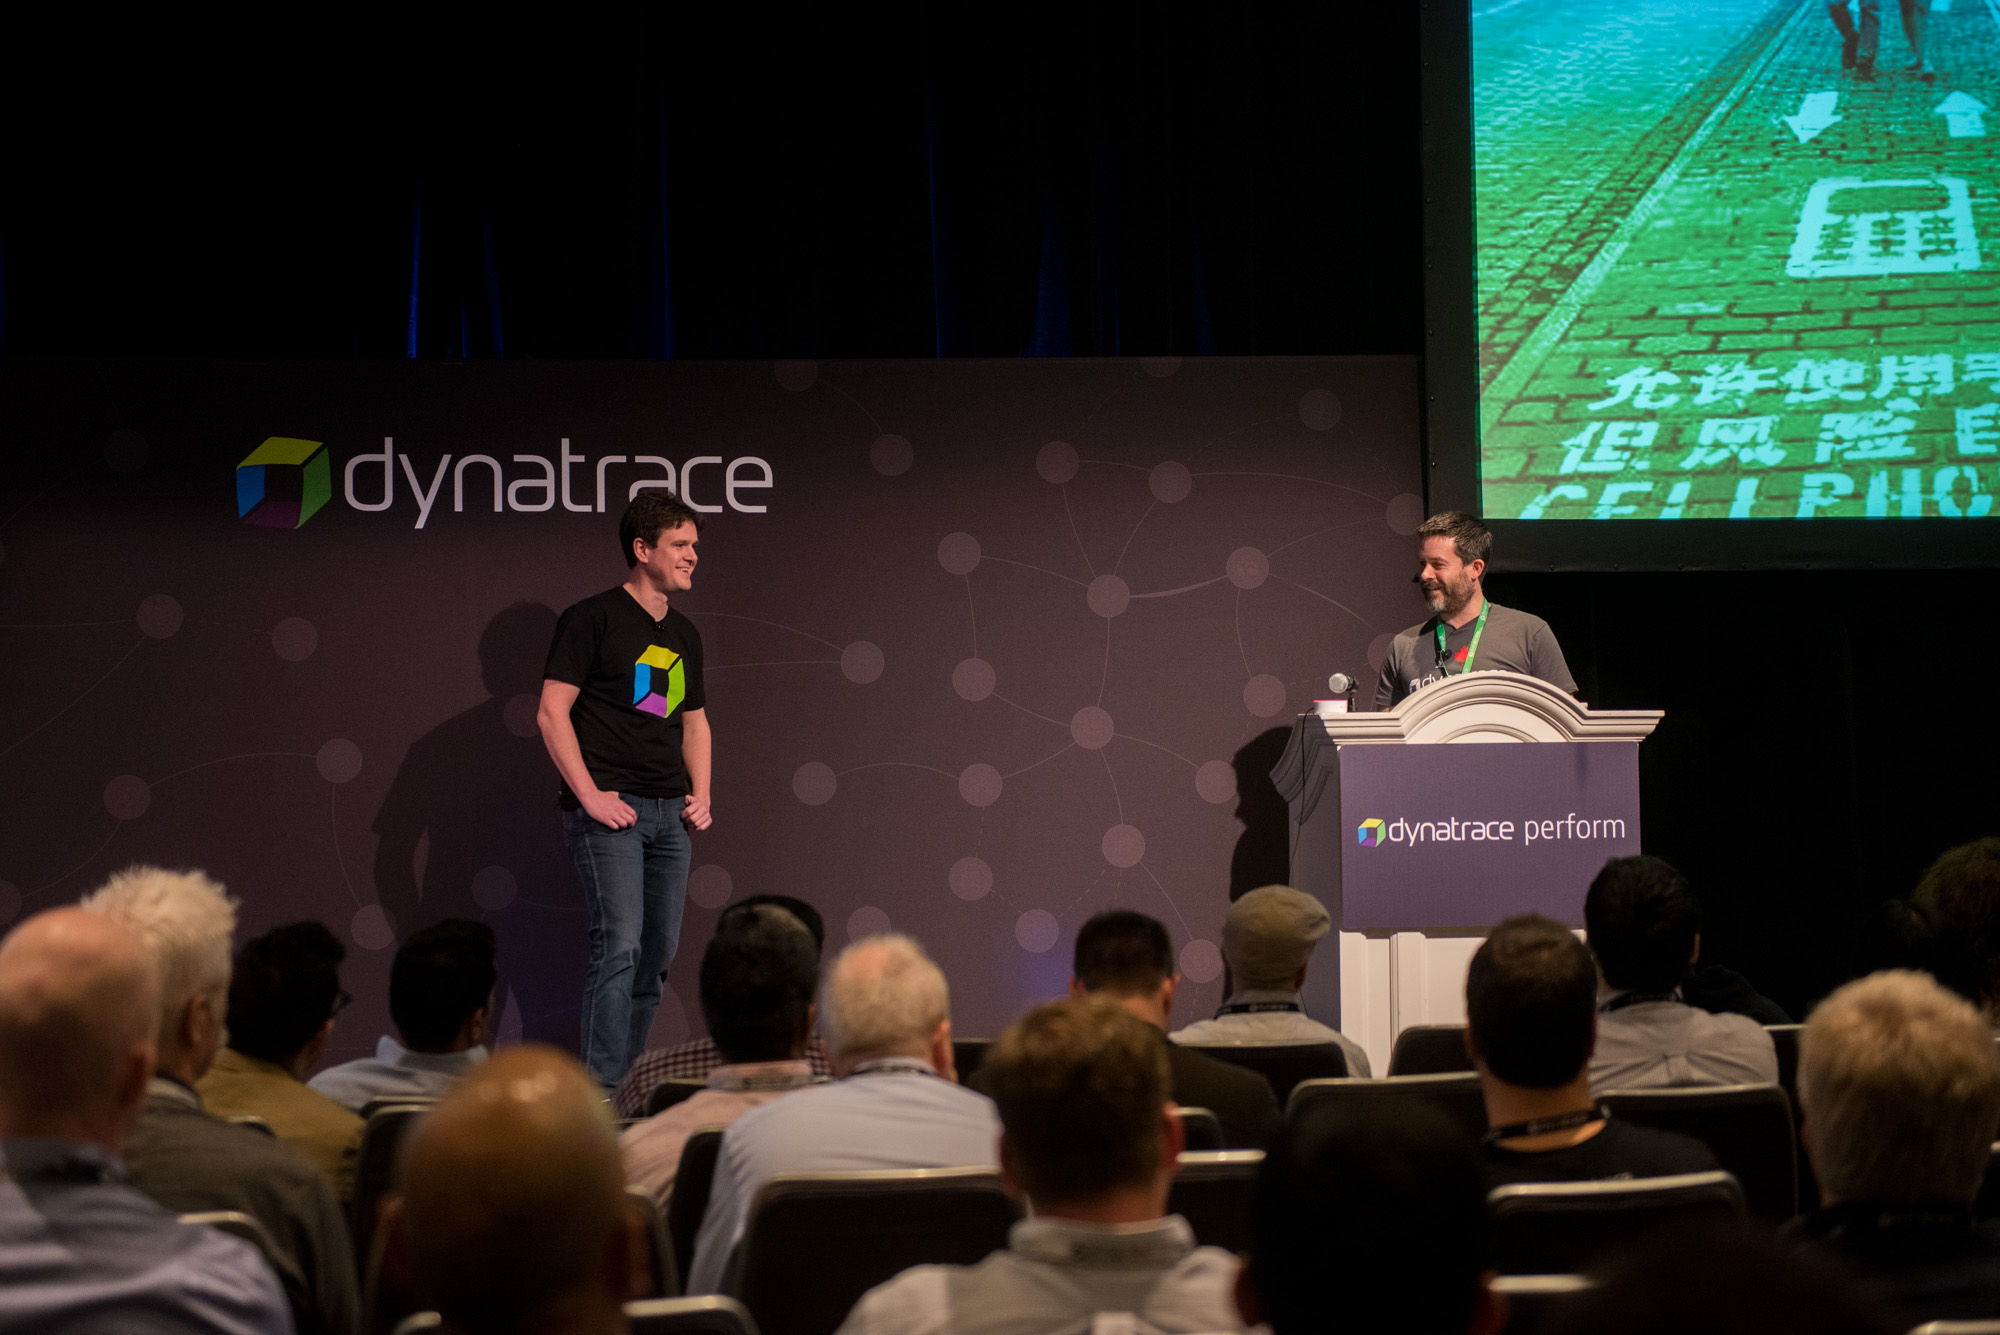 Hot day presentation by dynatrace employees